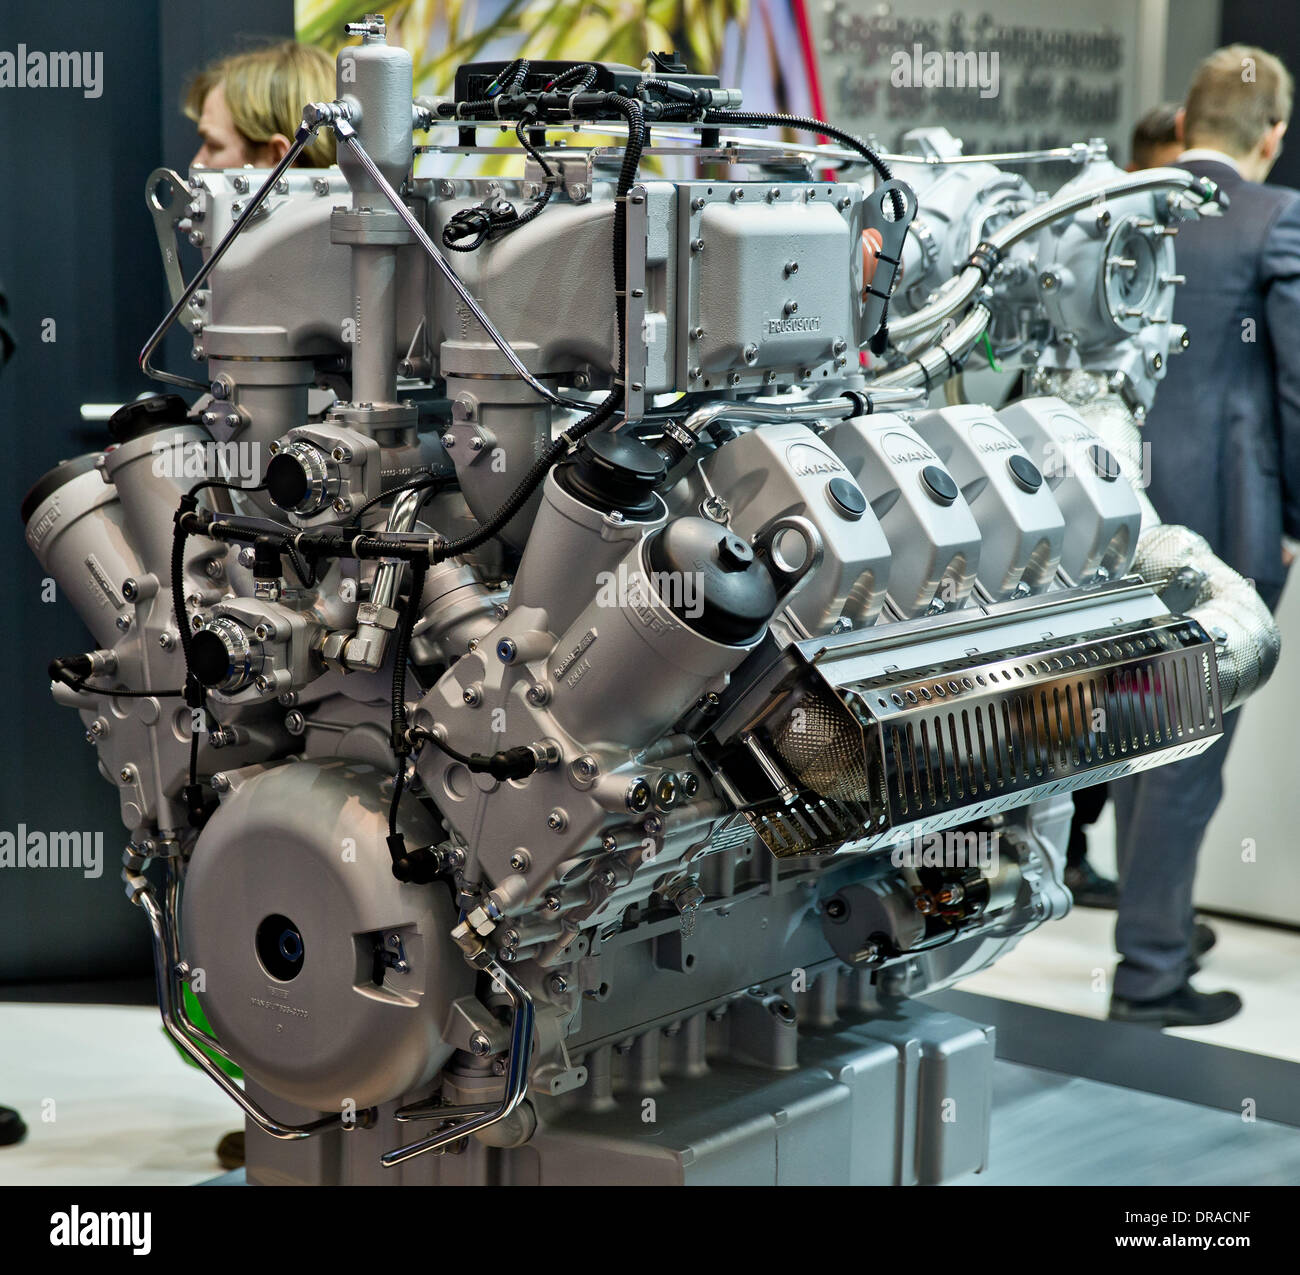 Chp Heat Stock Photos Images Page 4 Alamy Cogeneration Engine Diagram A Man Gas For Units